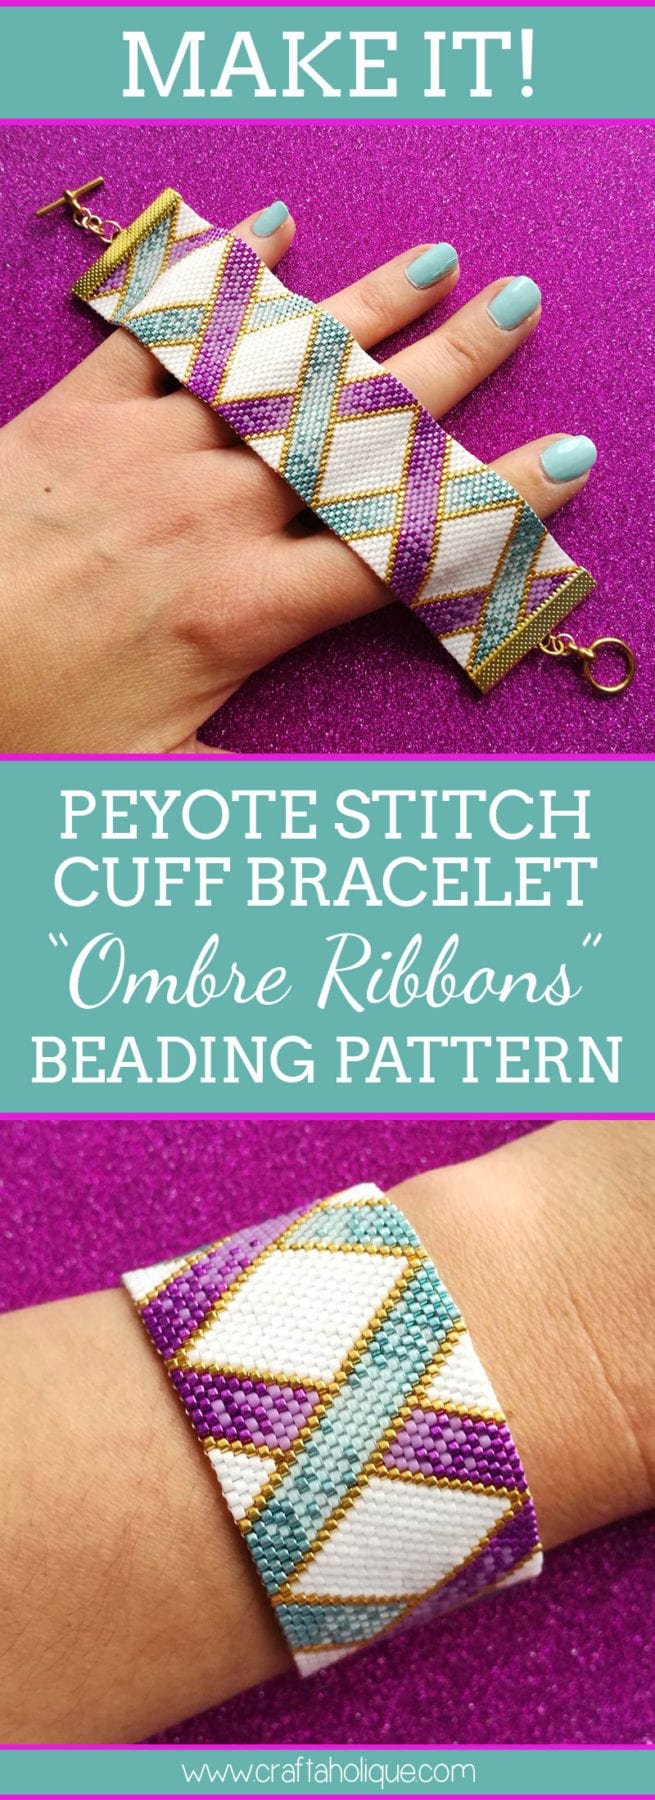 Peyote stitch for beginners - flat even count peyote bracelet pattern by Craftaholique